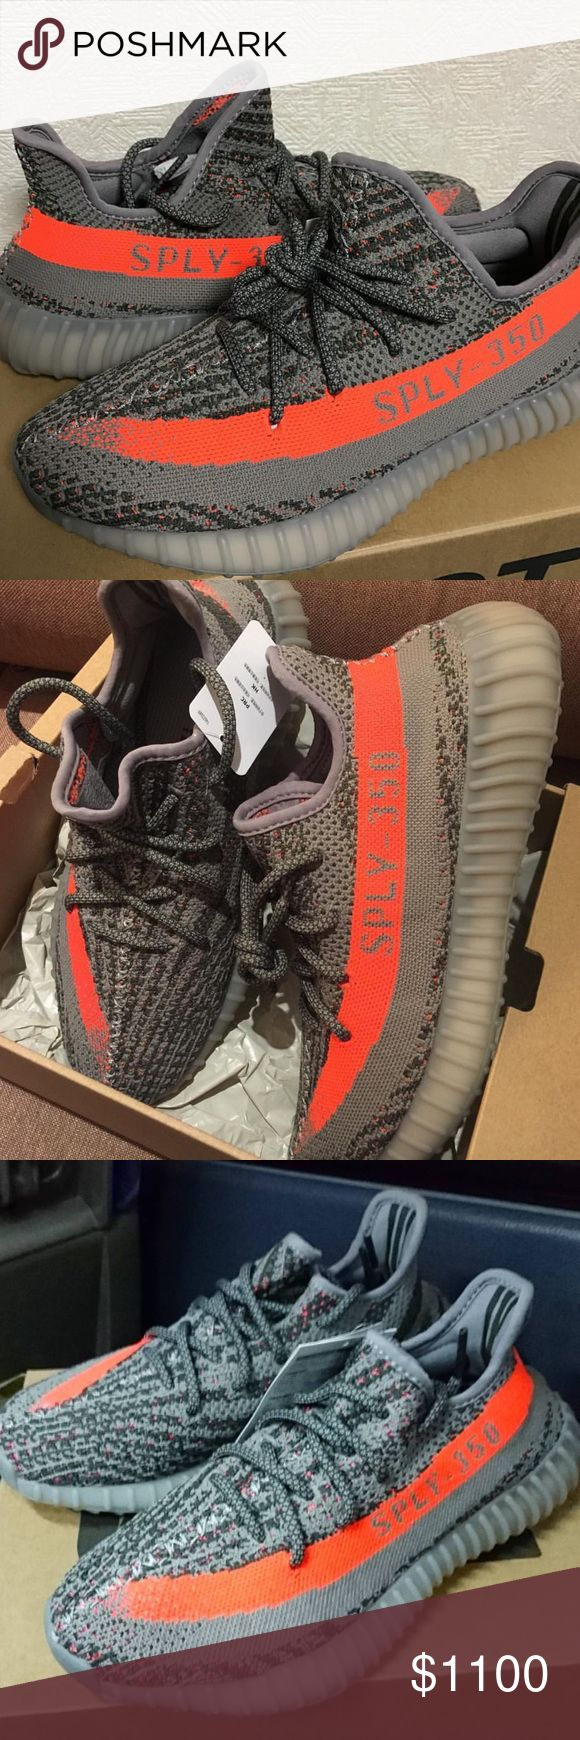 Yeezy boost v2 orange stripe Yeezy boost v2 orange stripe 100% authentic from Foot locker purchased in New York with receipt. Size 6 men's. (8 women's) brand new never worn. With adidas box, paper, & receipt. Adidas Shoes Sneakers